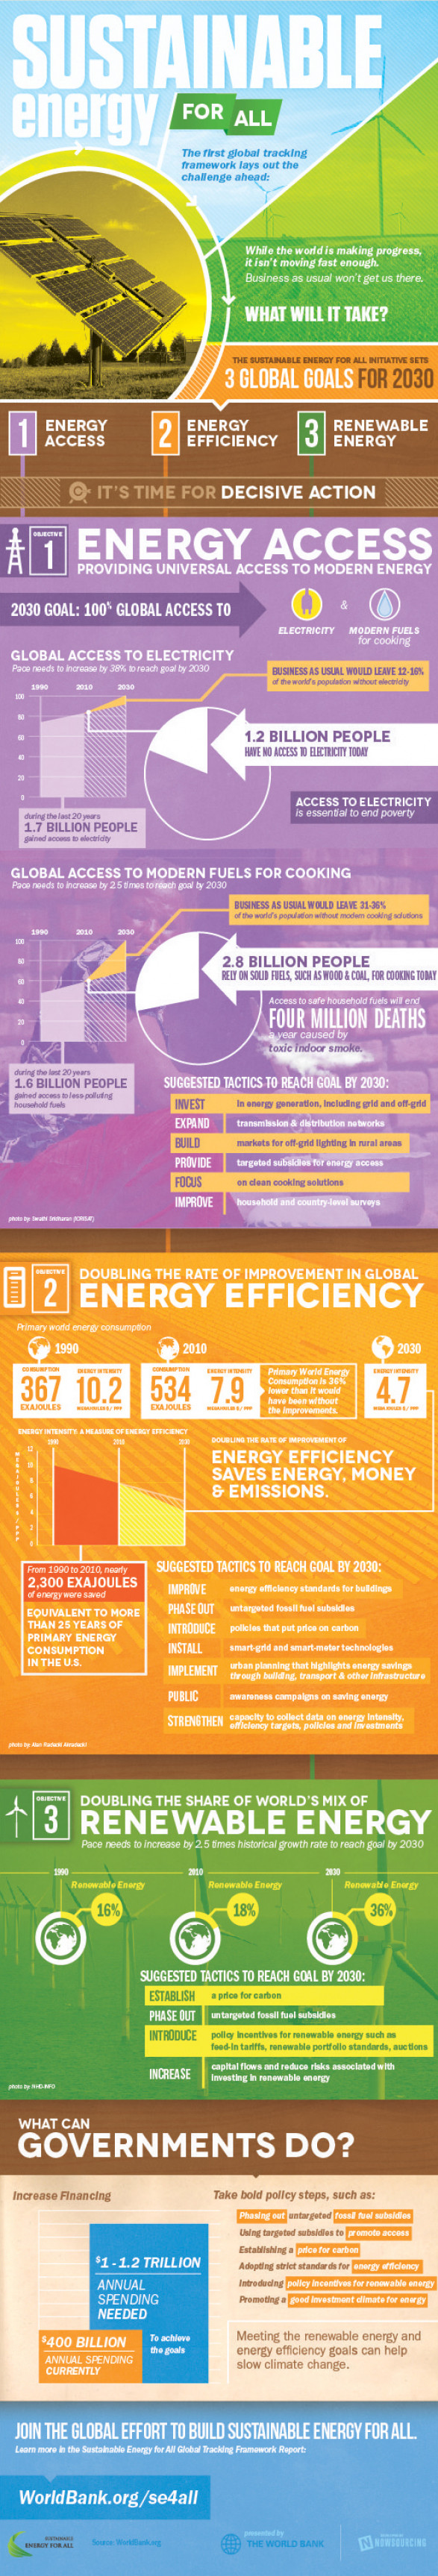 Sustainable Energy , Energy Access